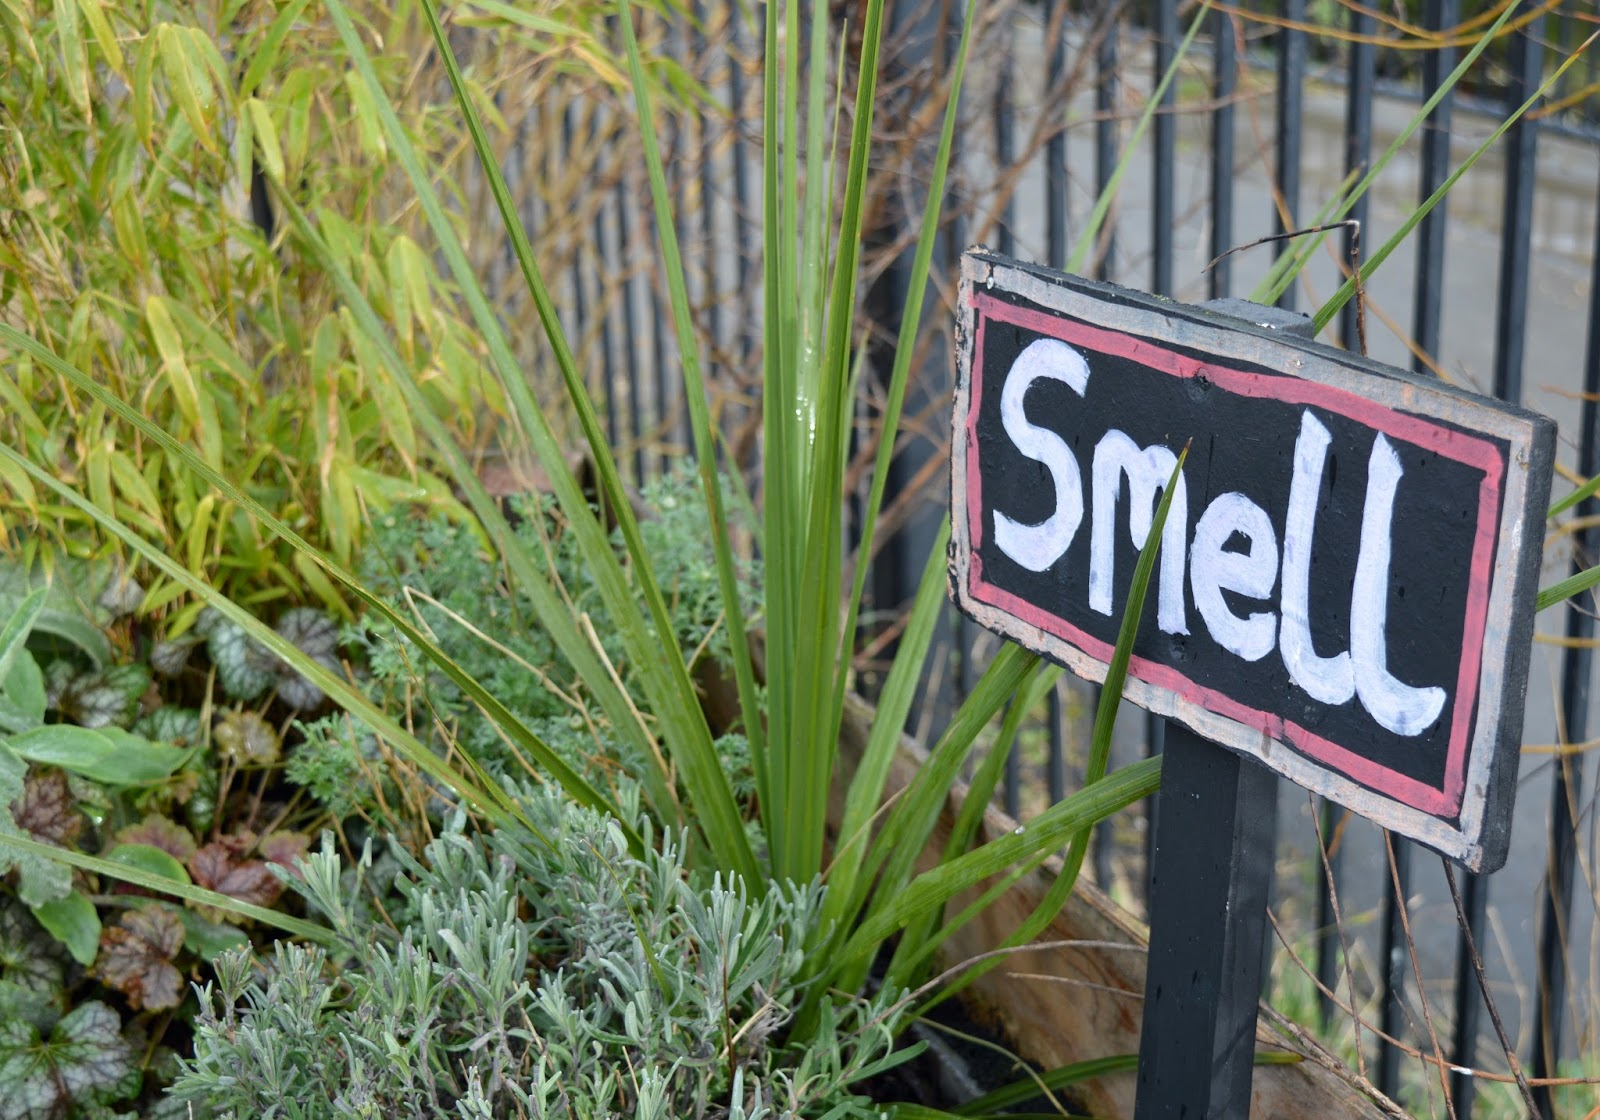 Ouseburn Farm Newcastle | A FREE Place to Take the Kids - sensory garden smell